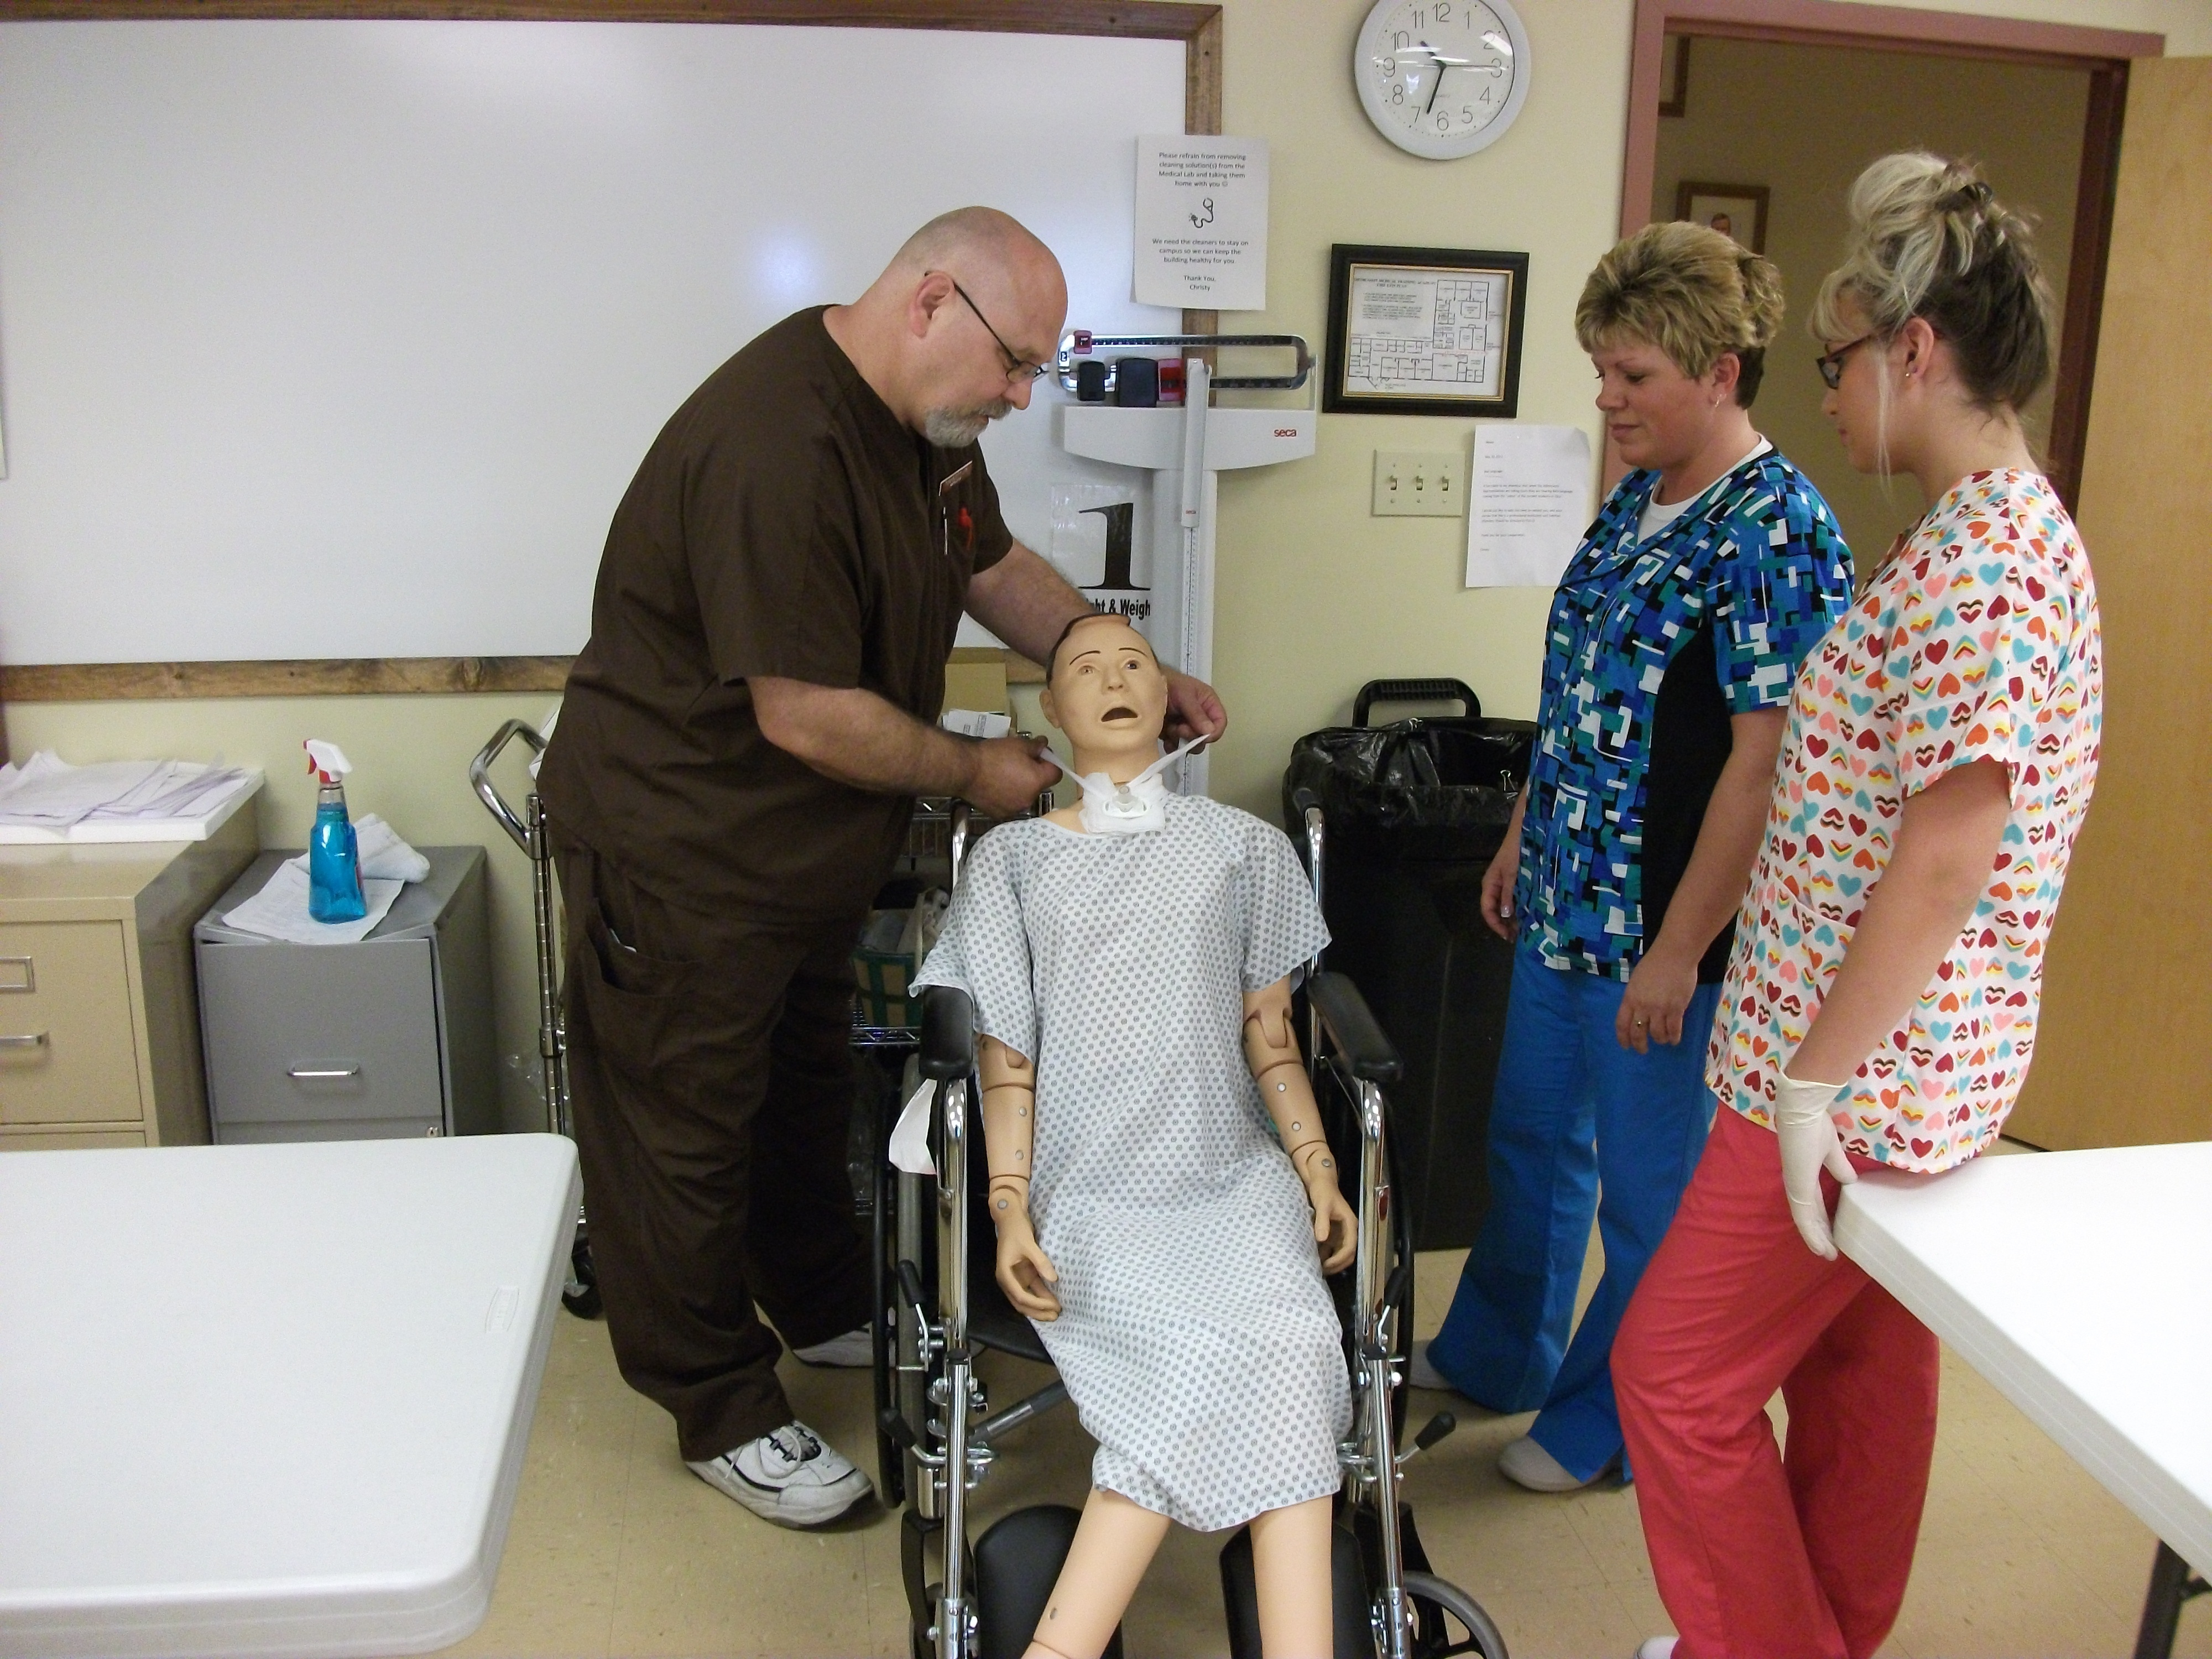 Medical Assistant – Northcoast Medical Academy